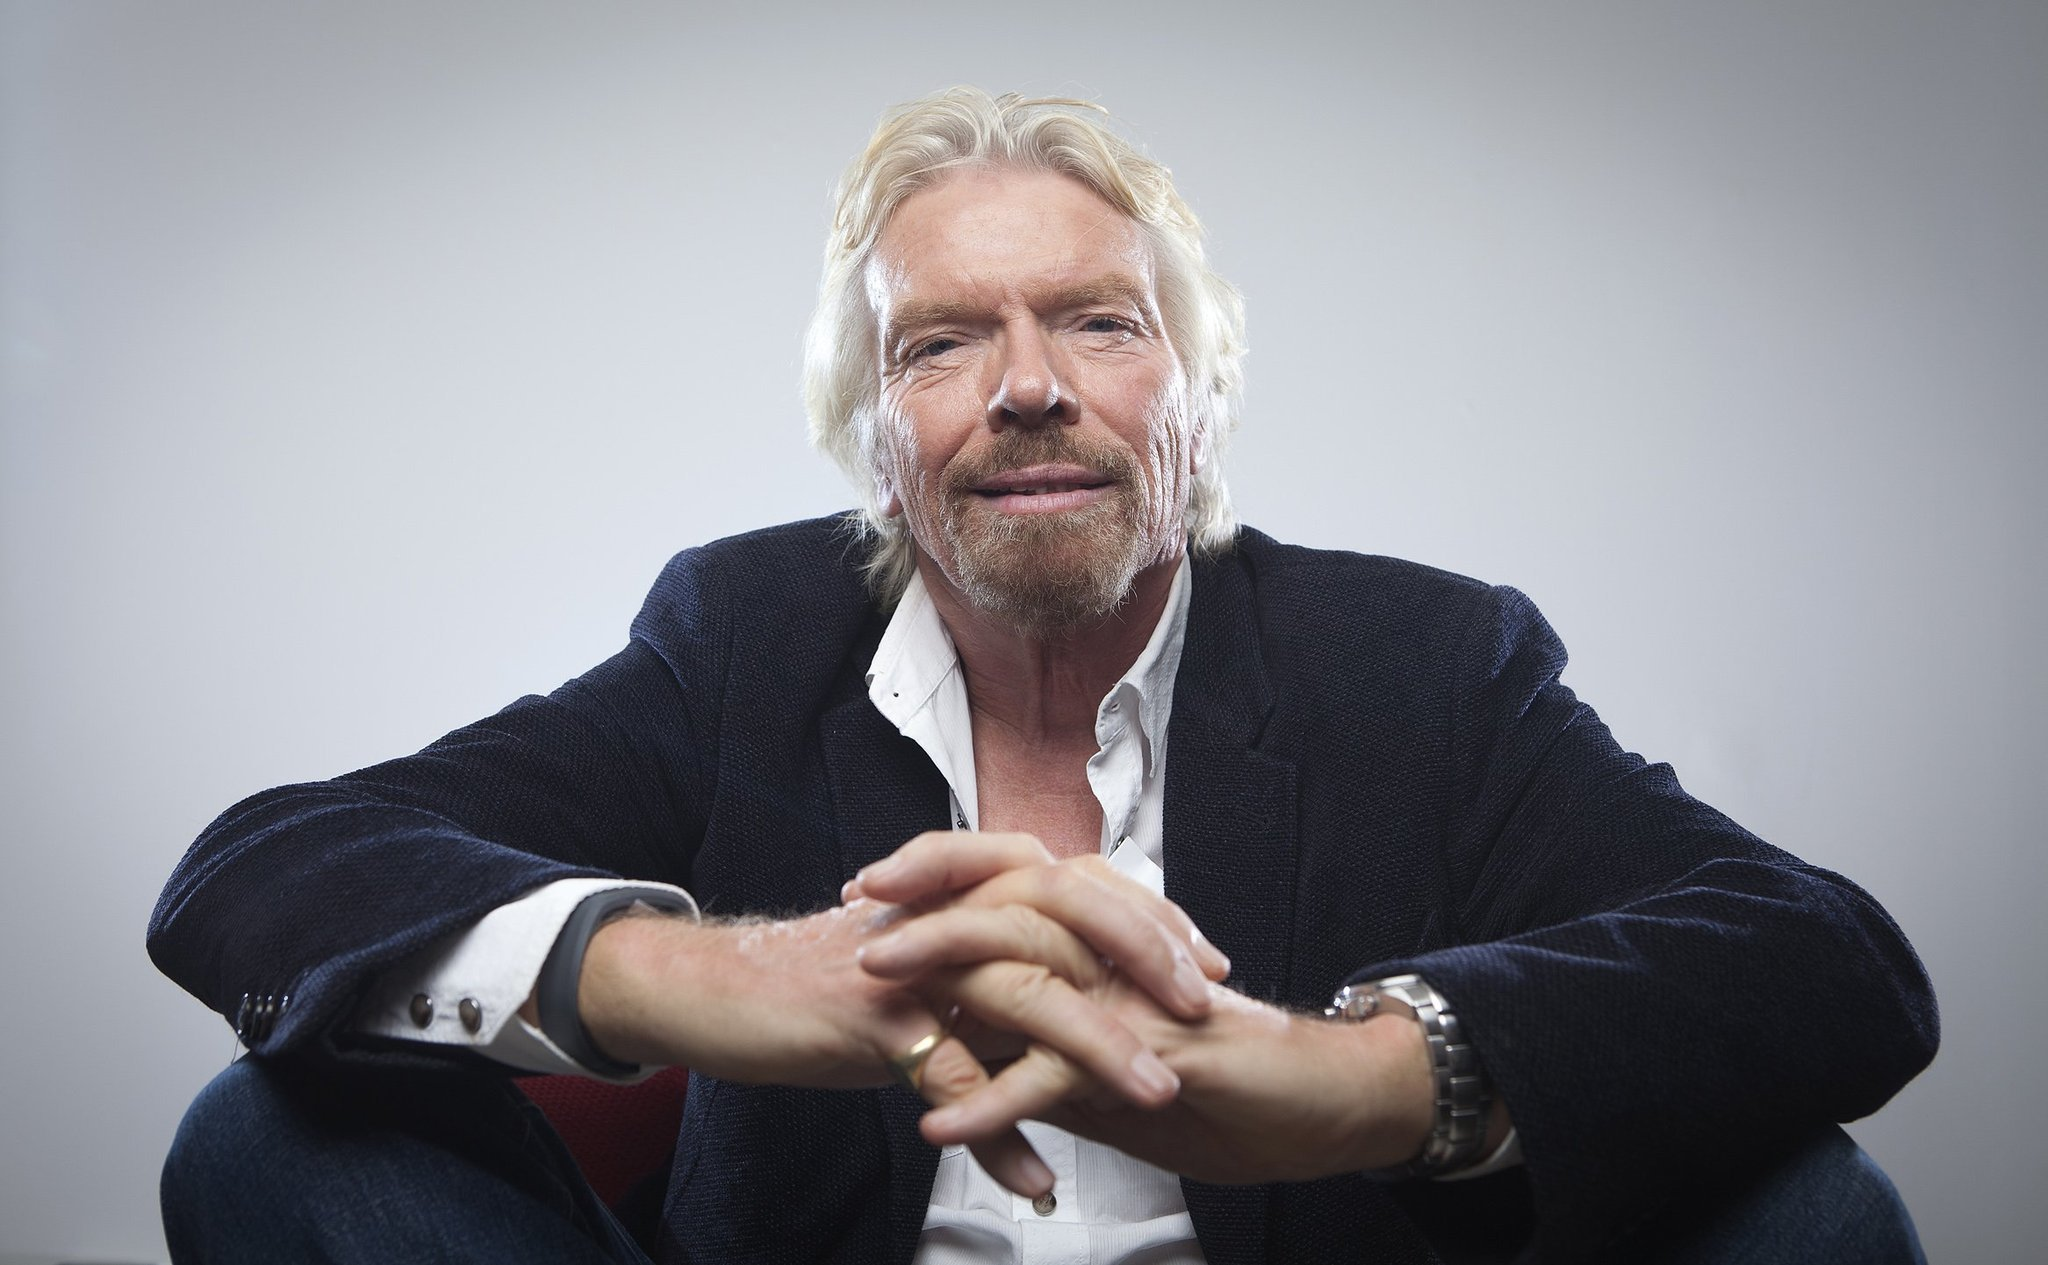 richard branson - photo #1